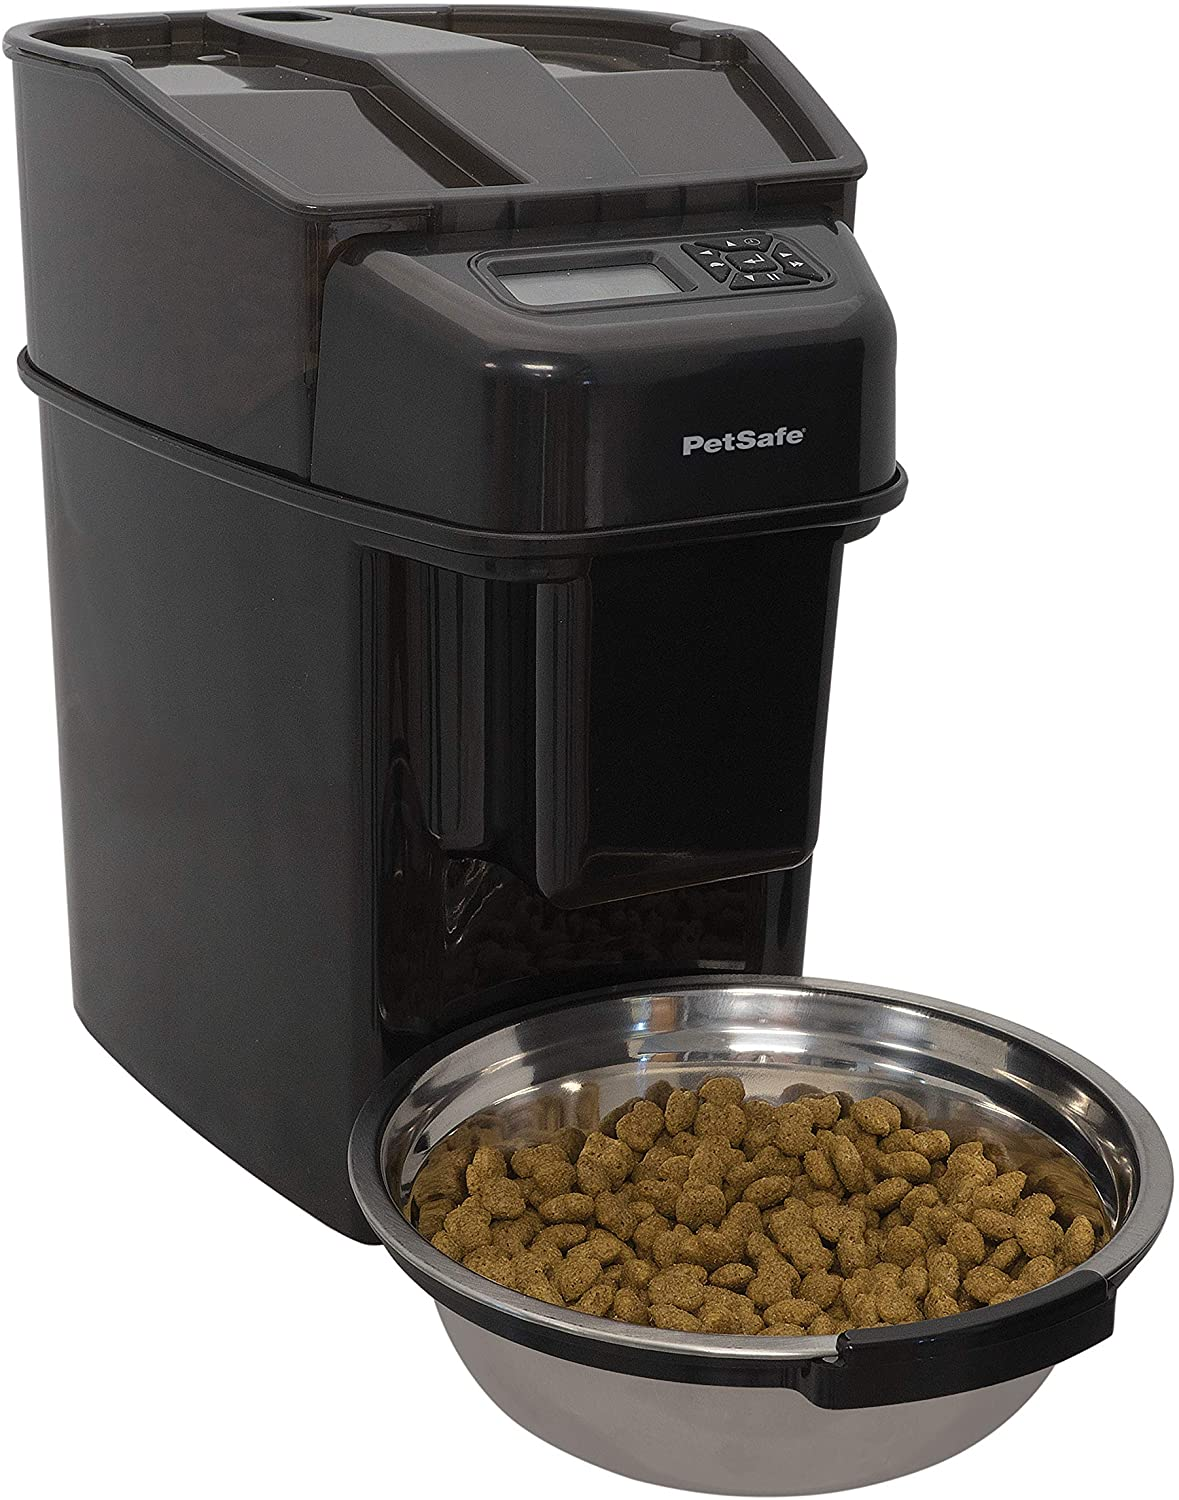 81WyoqmePUL. AC SL1500 - Best automatic feeder for cat: 12 products reviewed